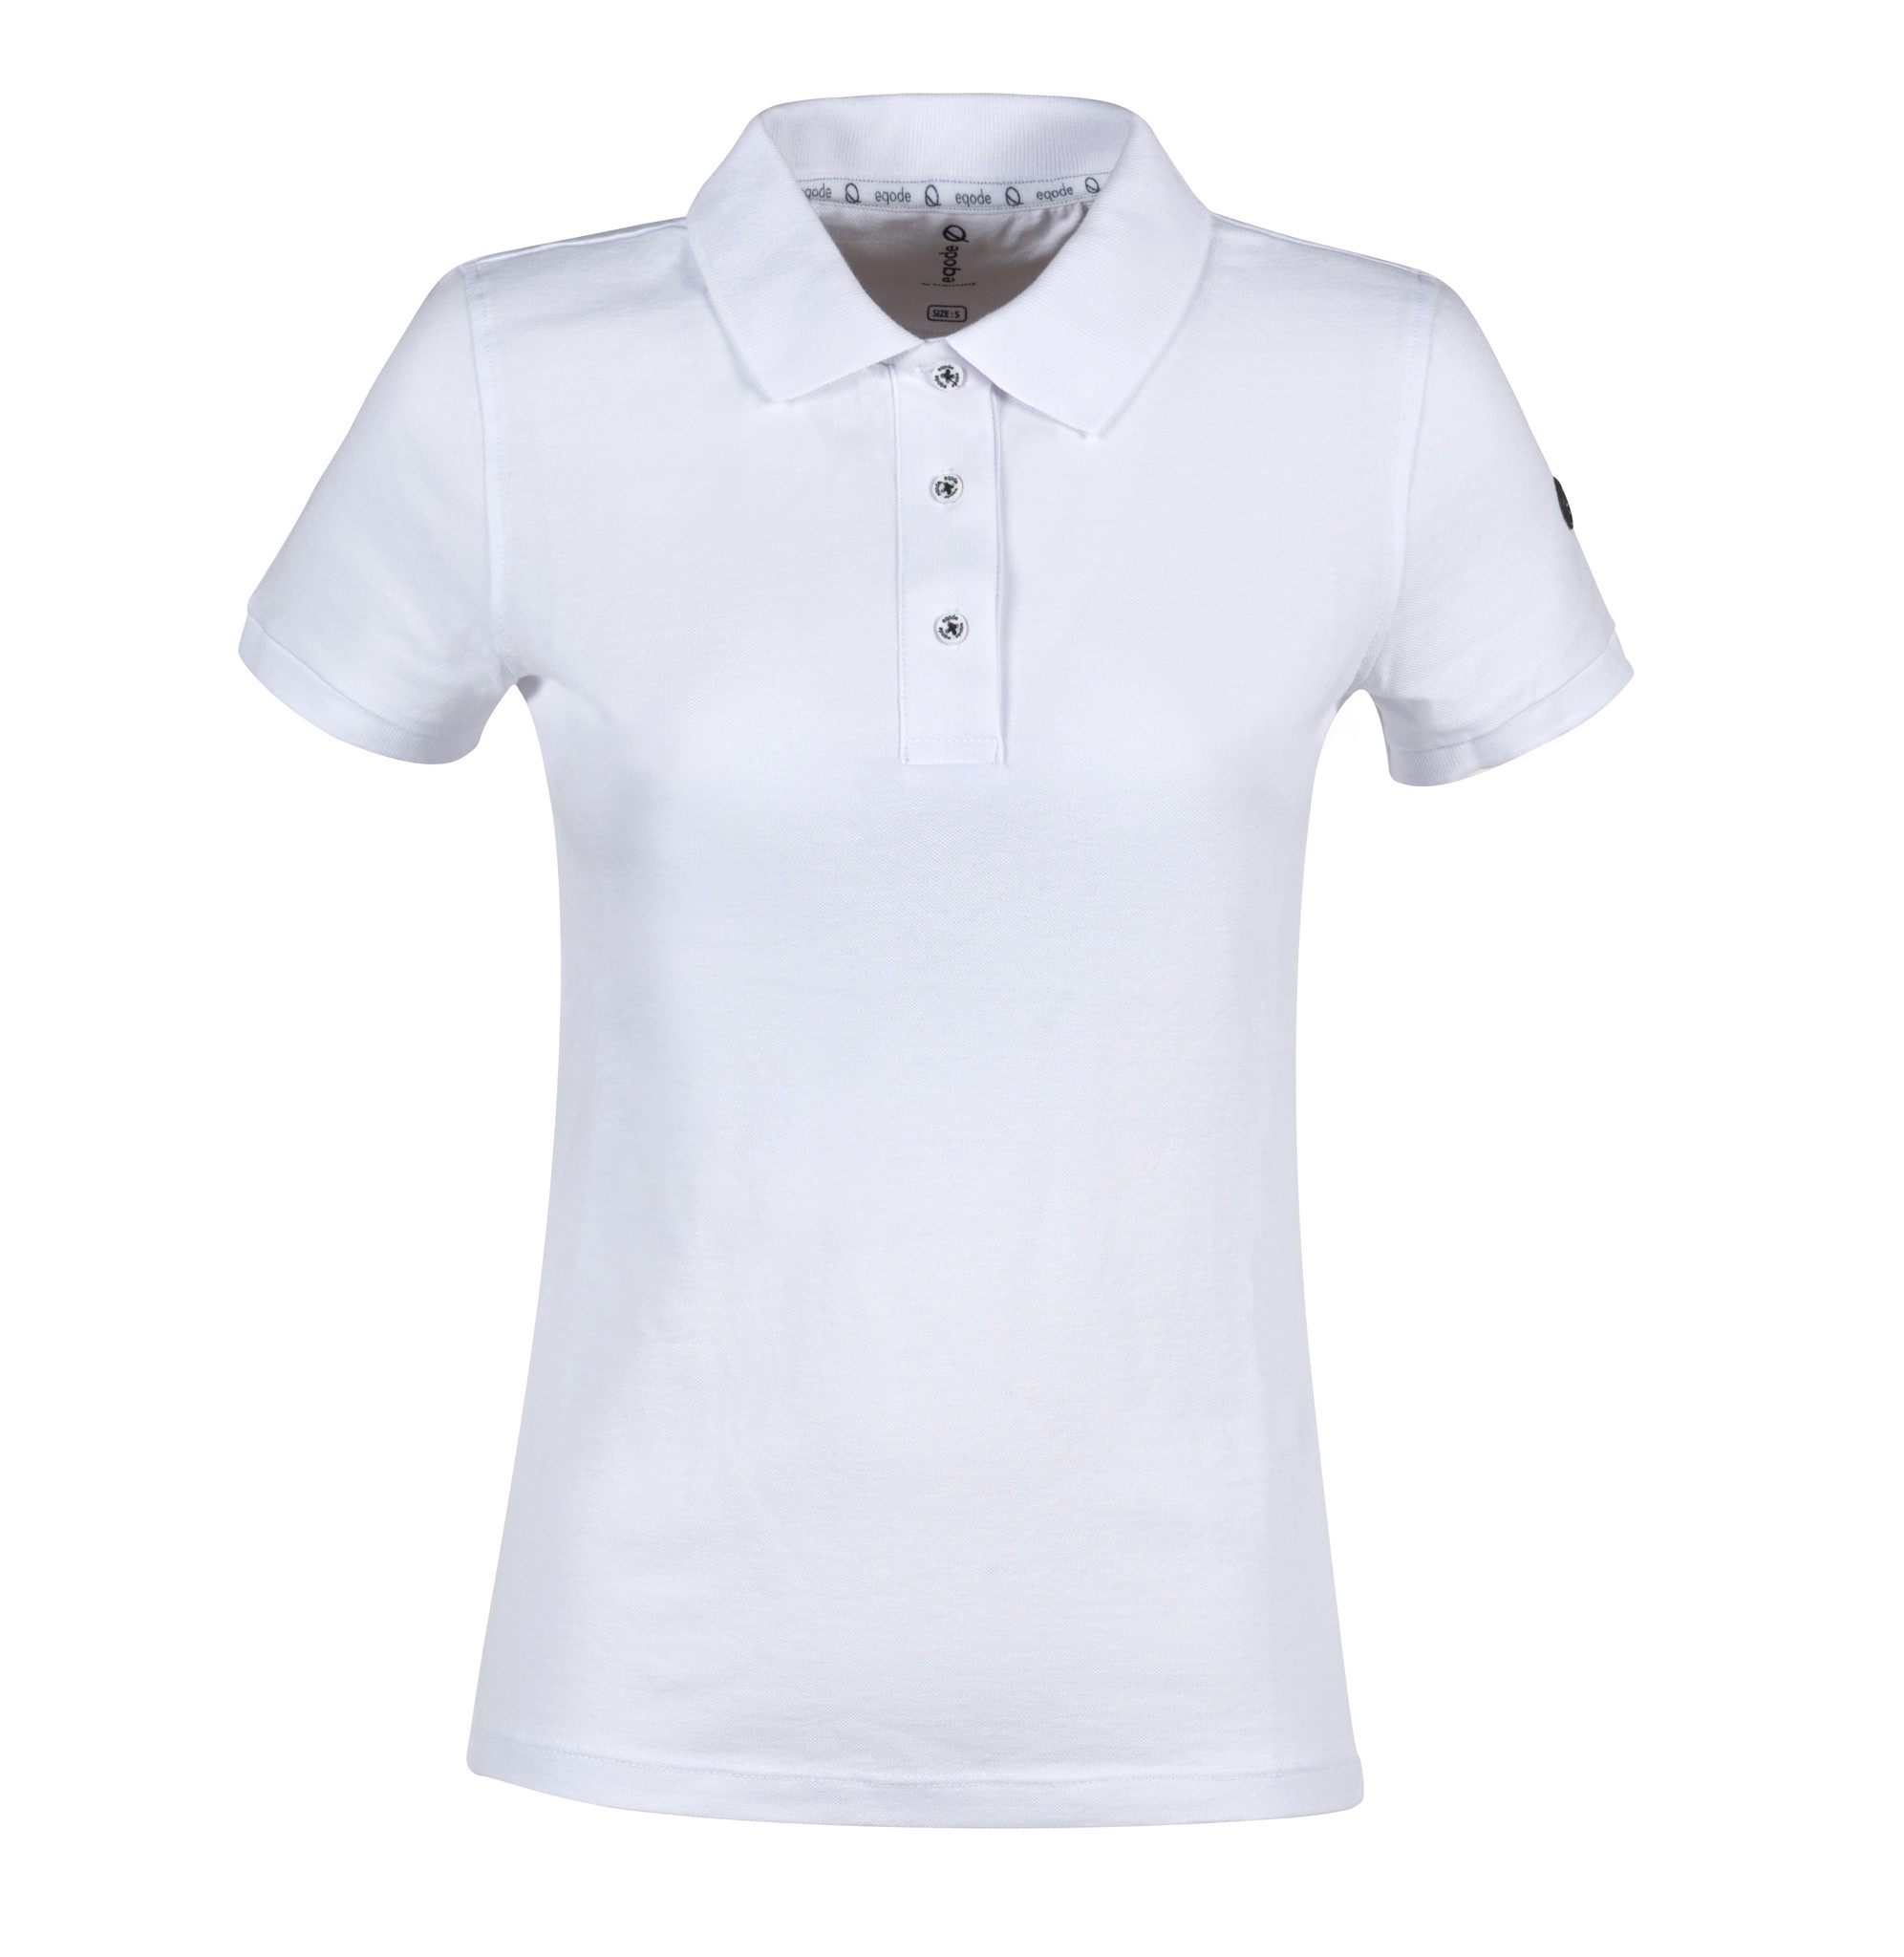 EQUILINE EQODE women's polo